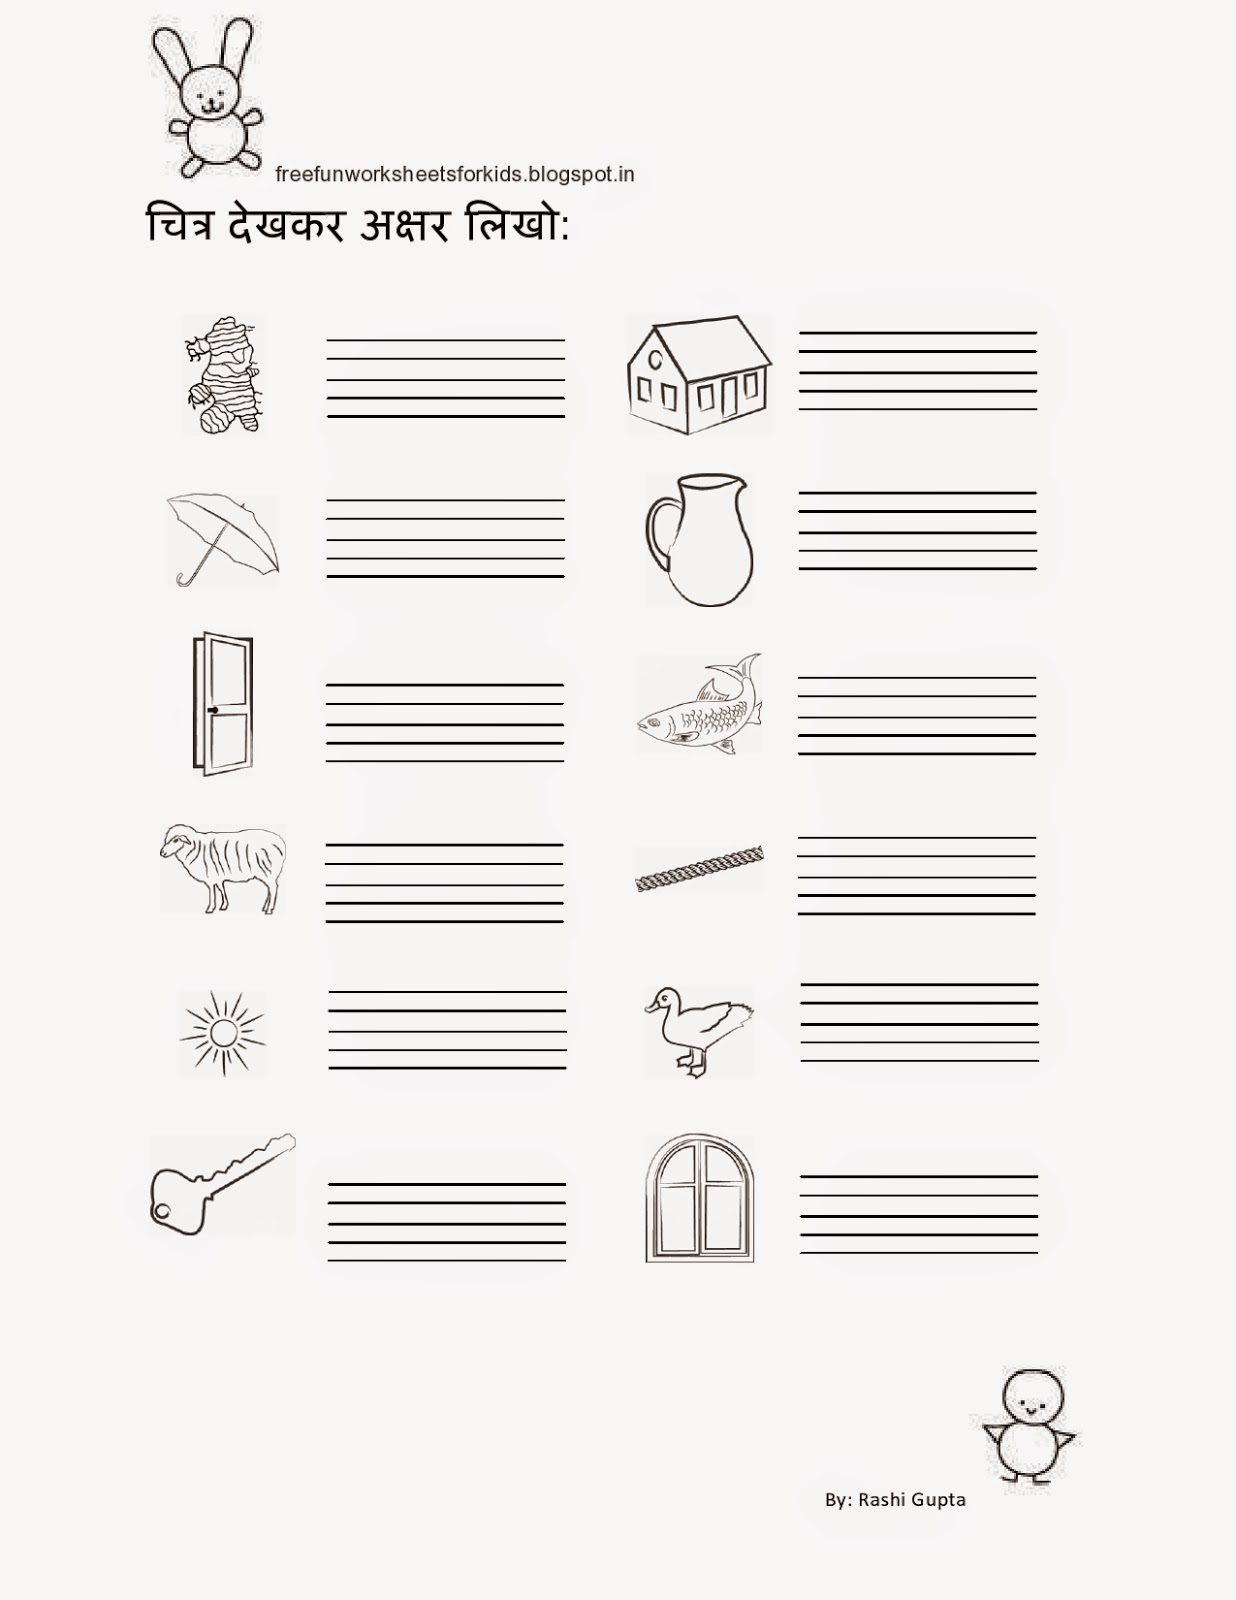 Worksheet In Hindi For Class 2